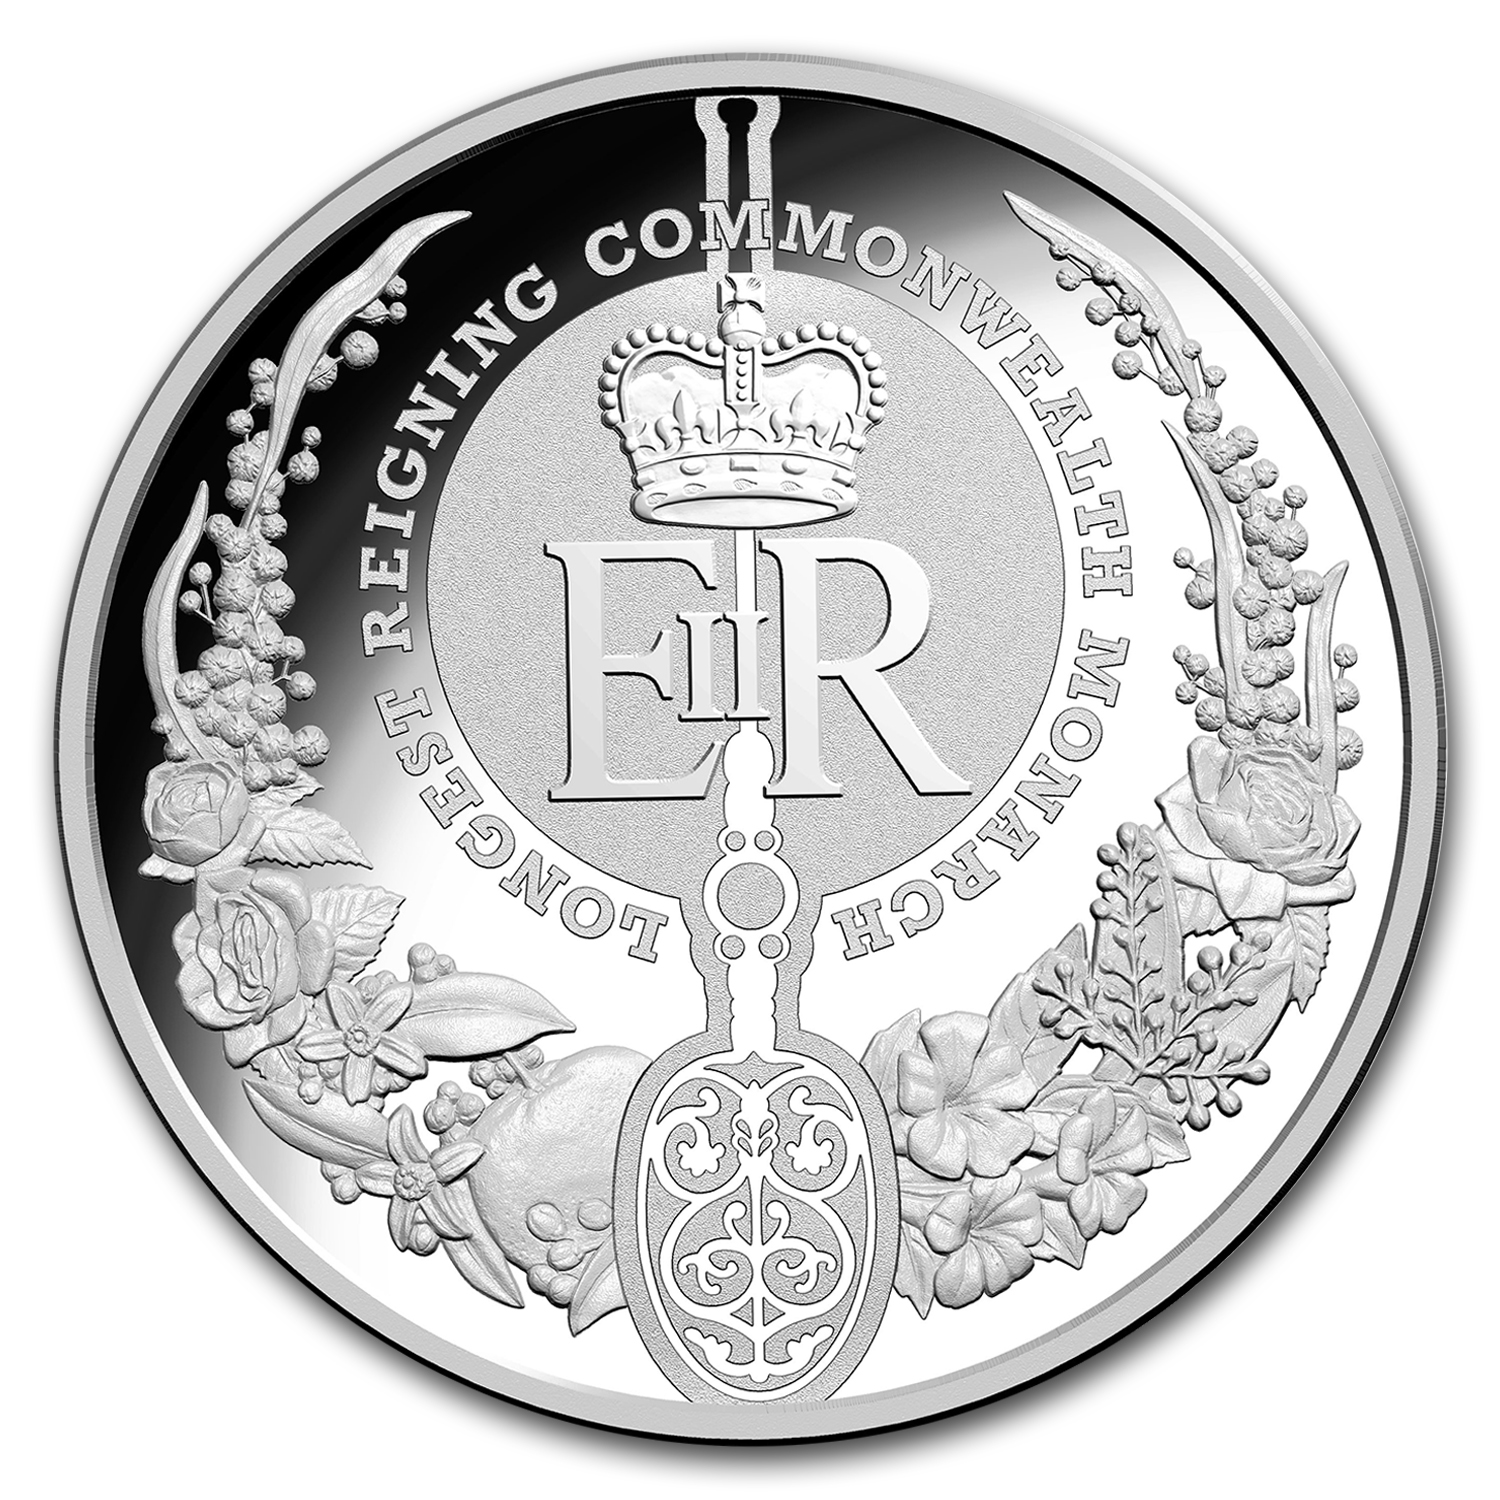 2015 Australia Silver $5 Longest Reigning Commonwealth Monarch